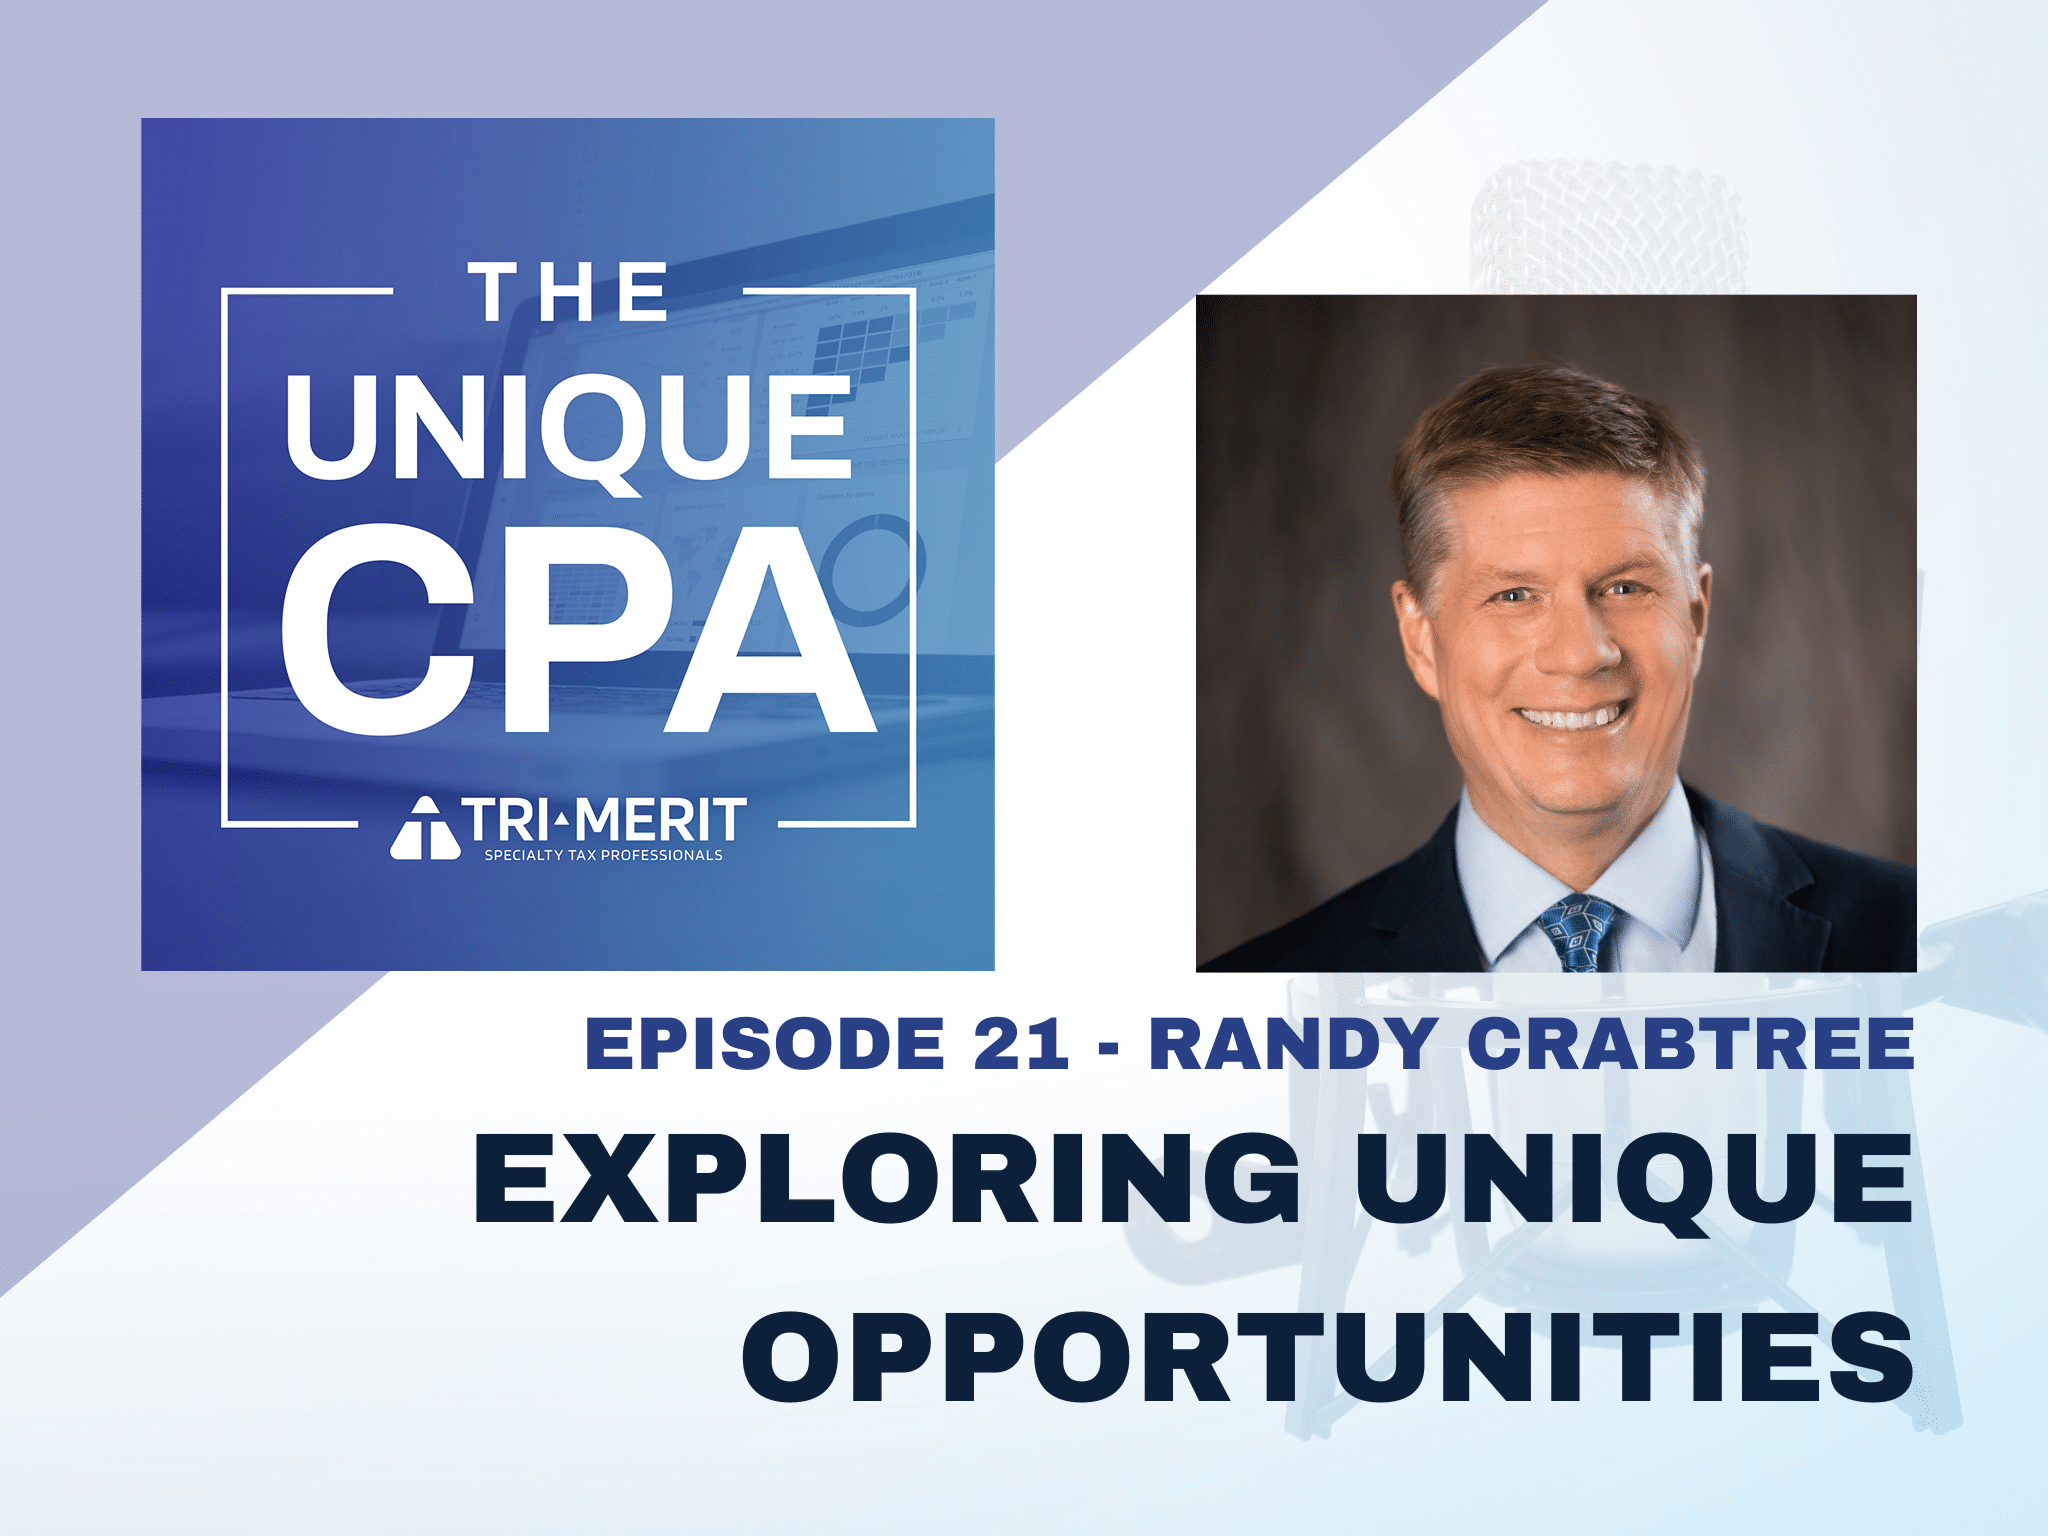 The Unique CPA Feature Image Ep 21 Randy Crabtree - Exploring Unique Opportunities - Tri-Merit